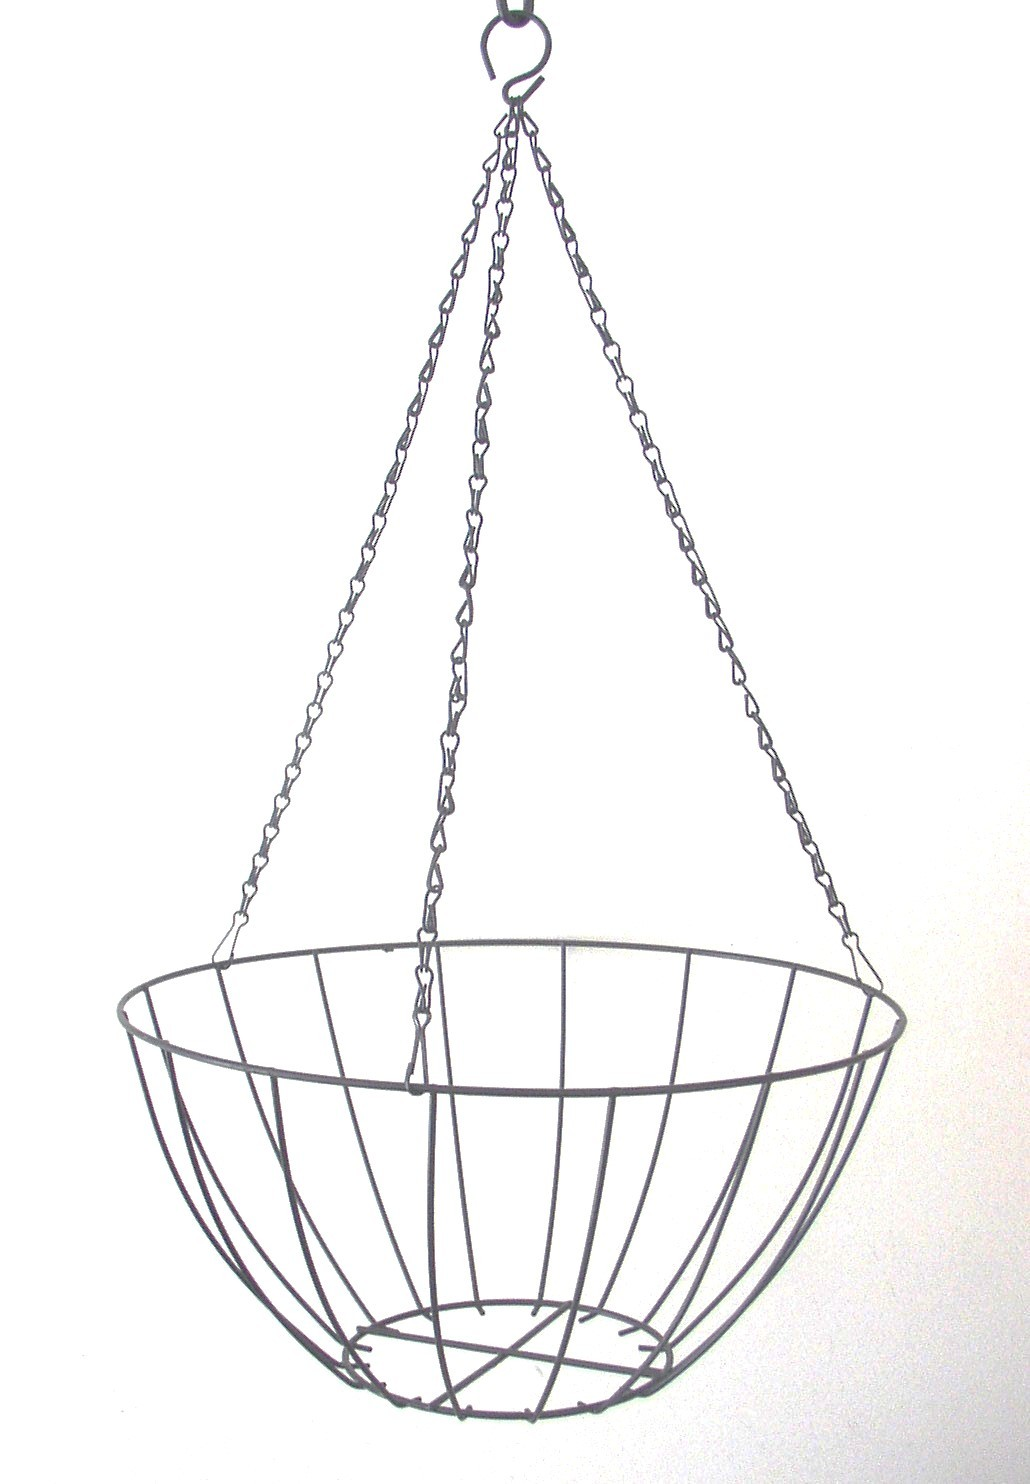 Ryset Aust 400mm STANDARD WIRE HANGING BASKET & LINER GDP434 Quality ...